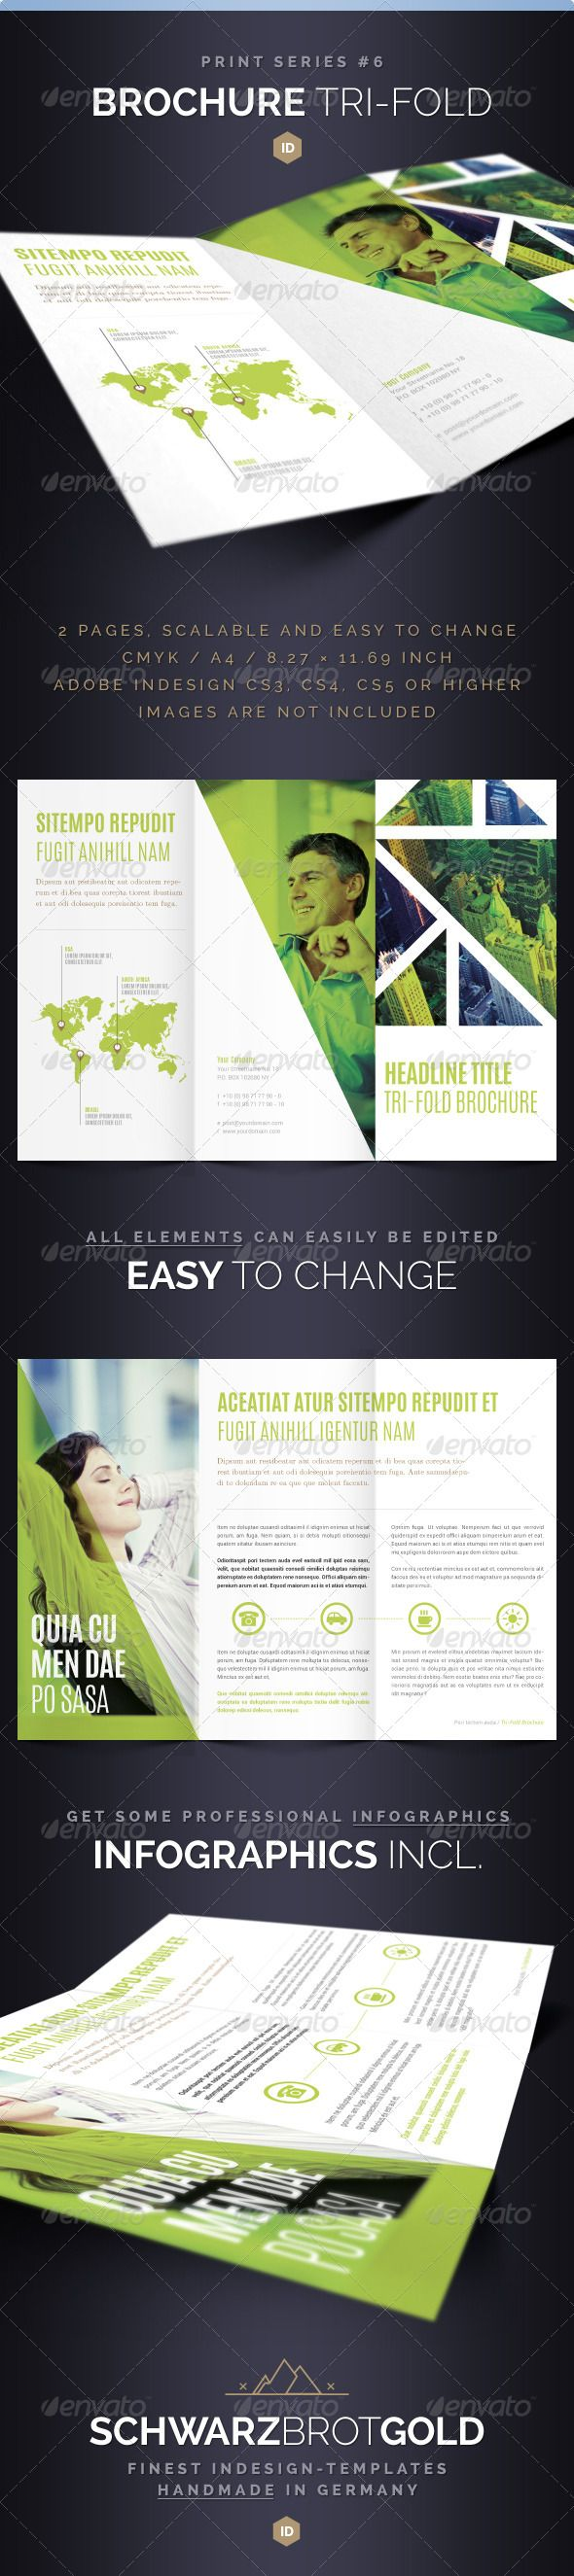 46 best Collateral images on Pinterest | Brochures, Brochure ...